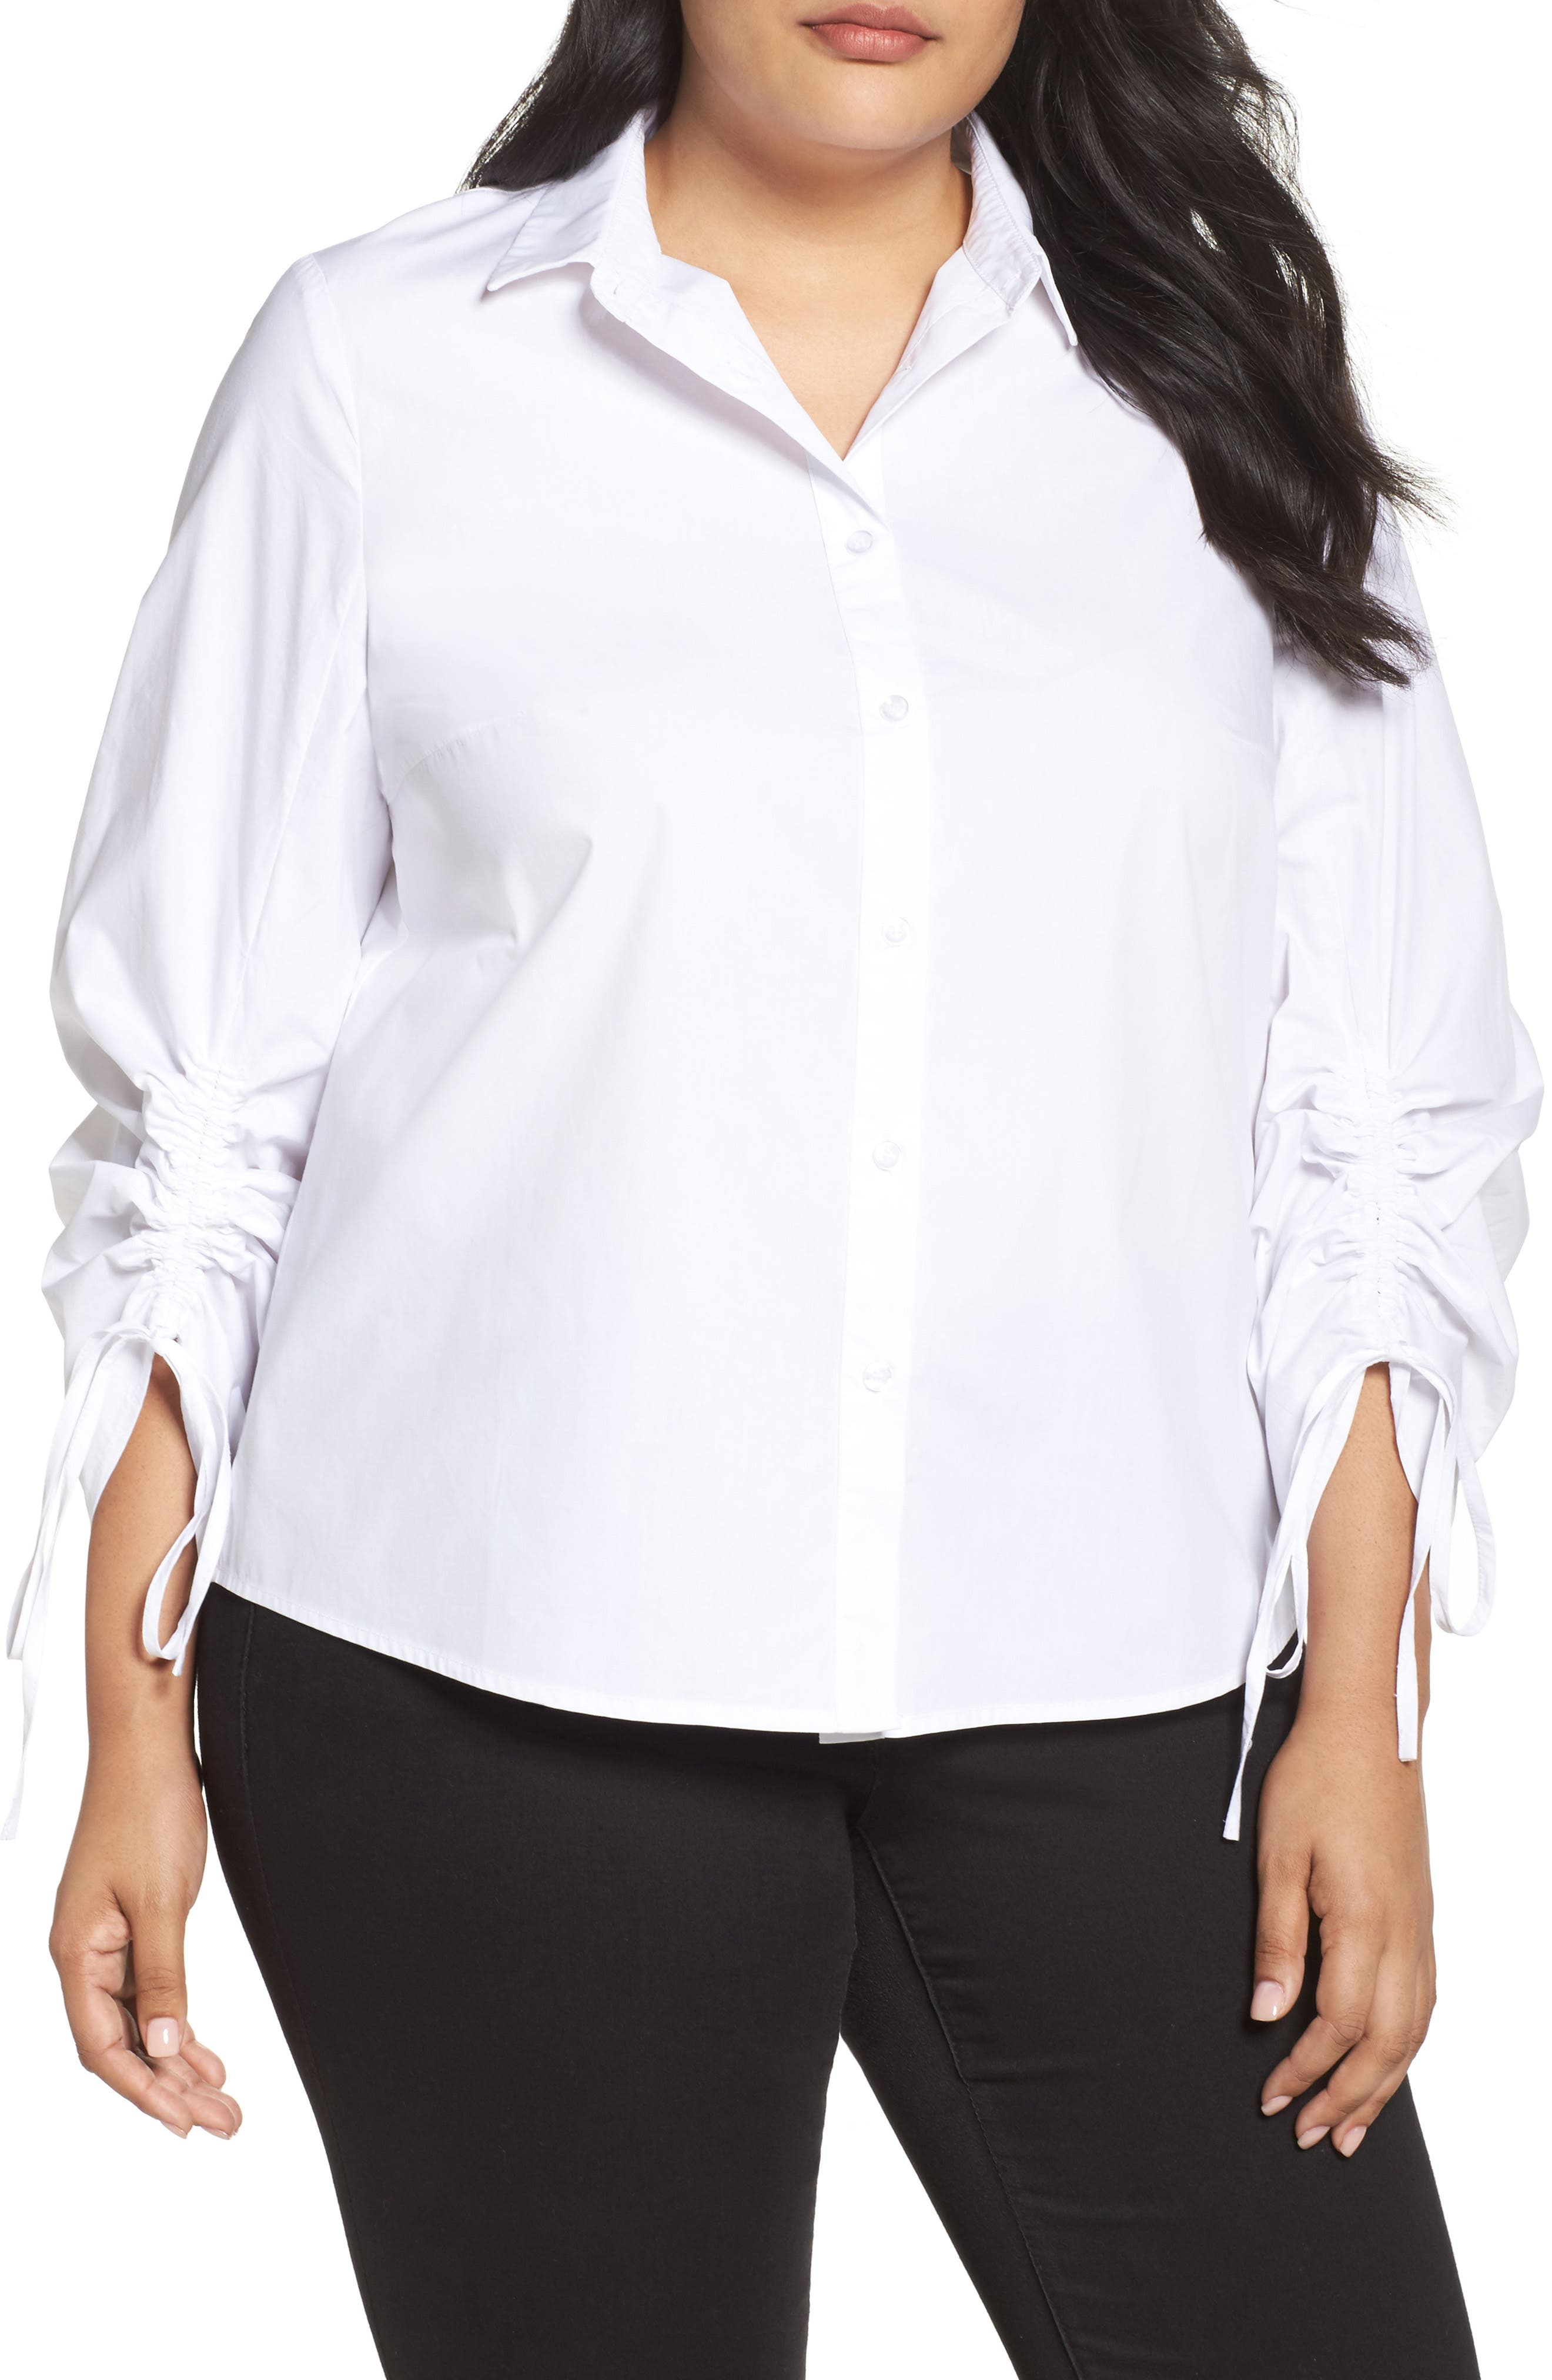 Ruched Sleeve Button-Up Shirt,                             Main thumbnail 1, color,                             101